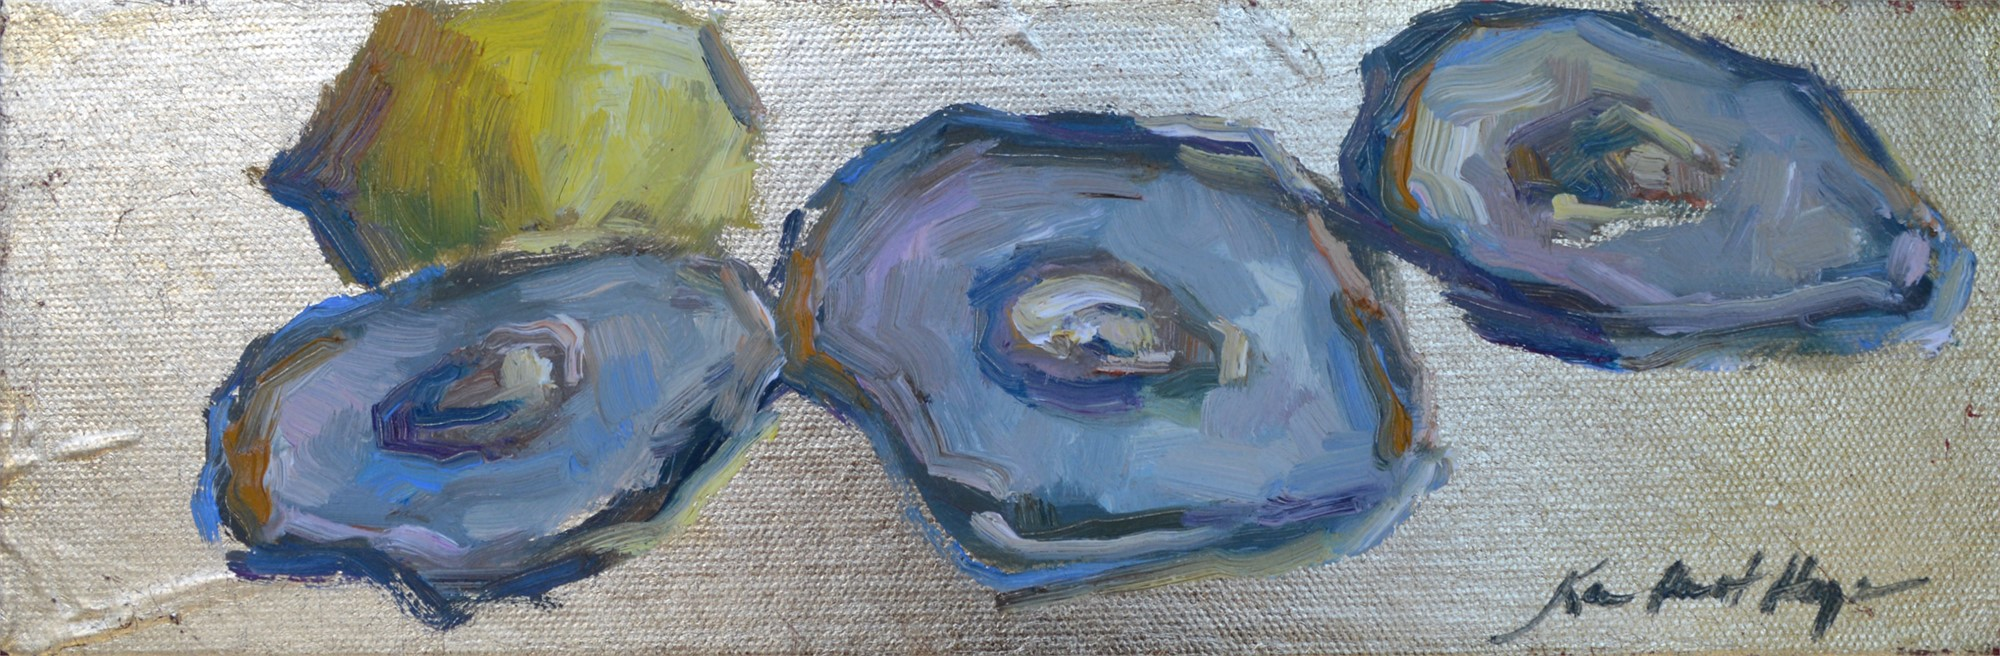 Lowcountry Oysters and One Lemon by Karen Hewitt Hagan